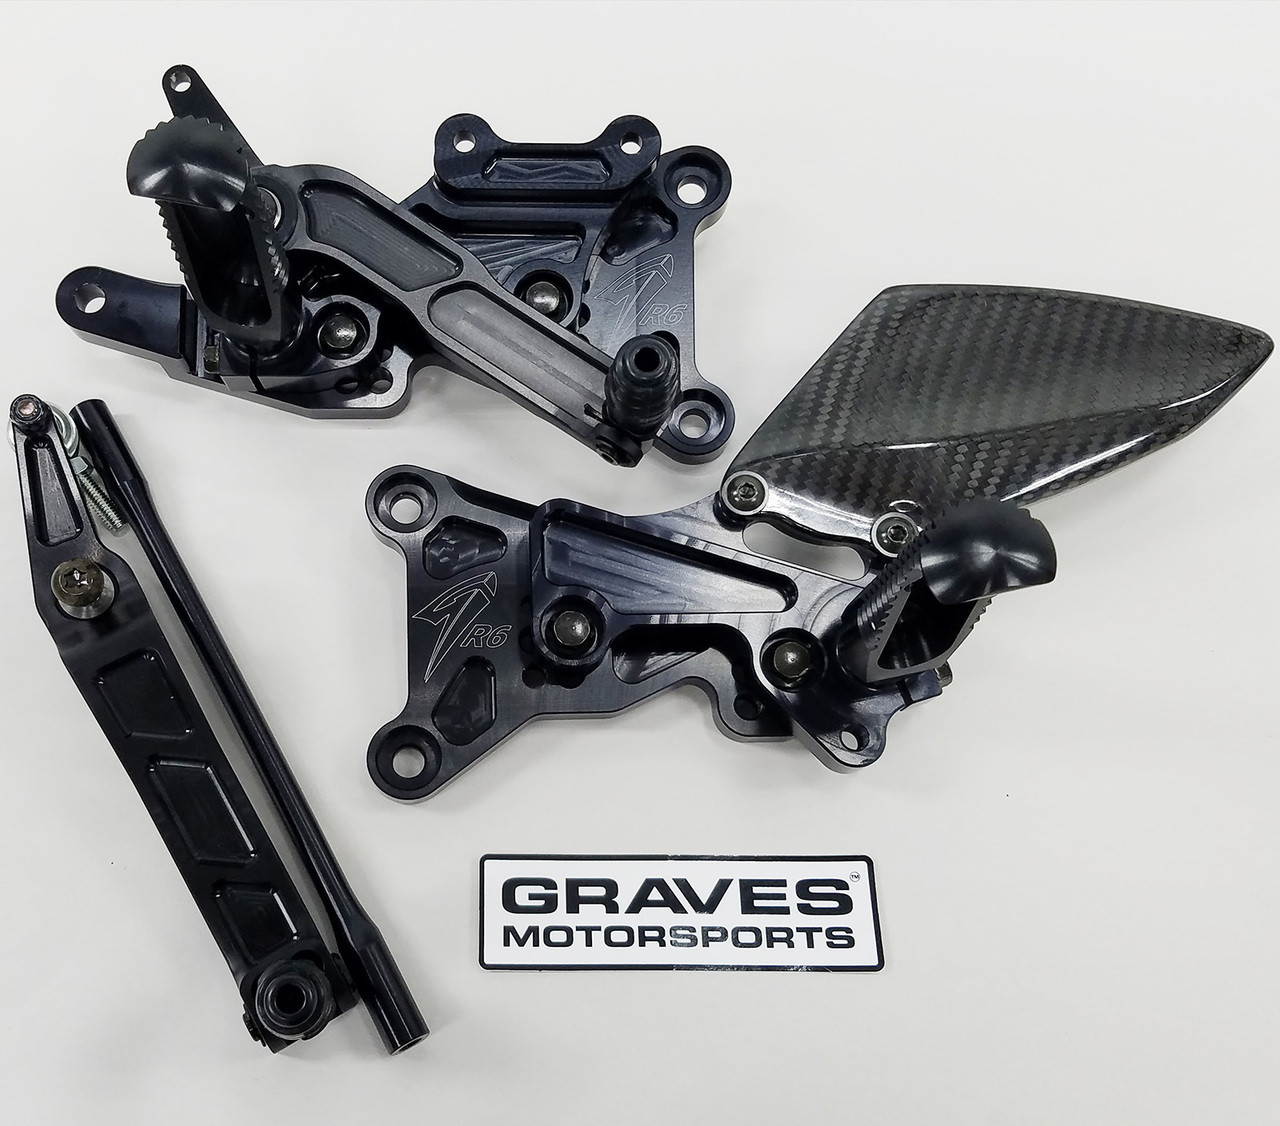 Graves Motorsports Yamaha R6 WORKS Velocity Stacks